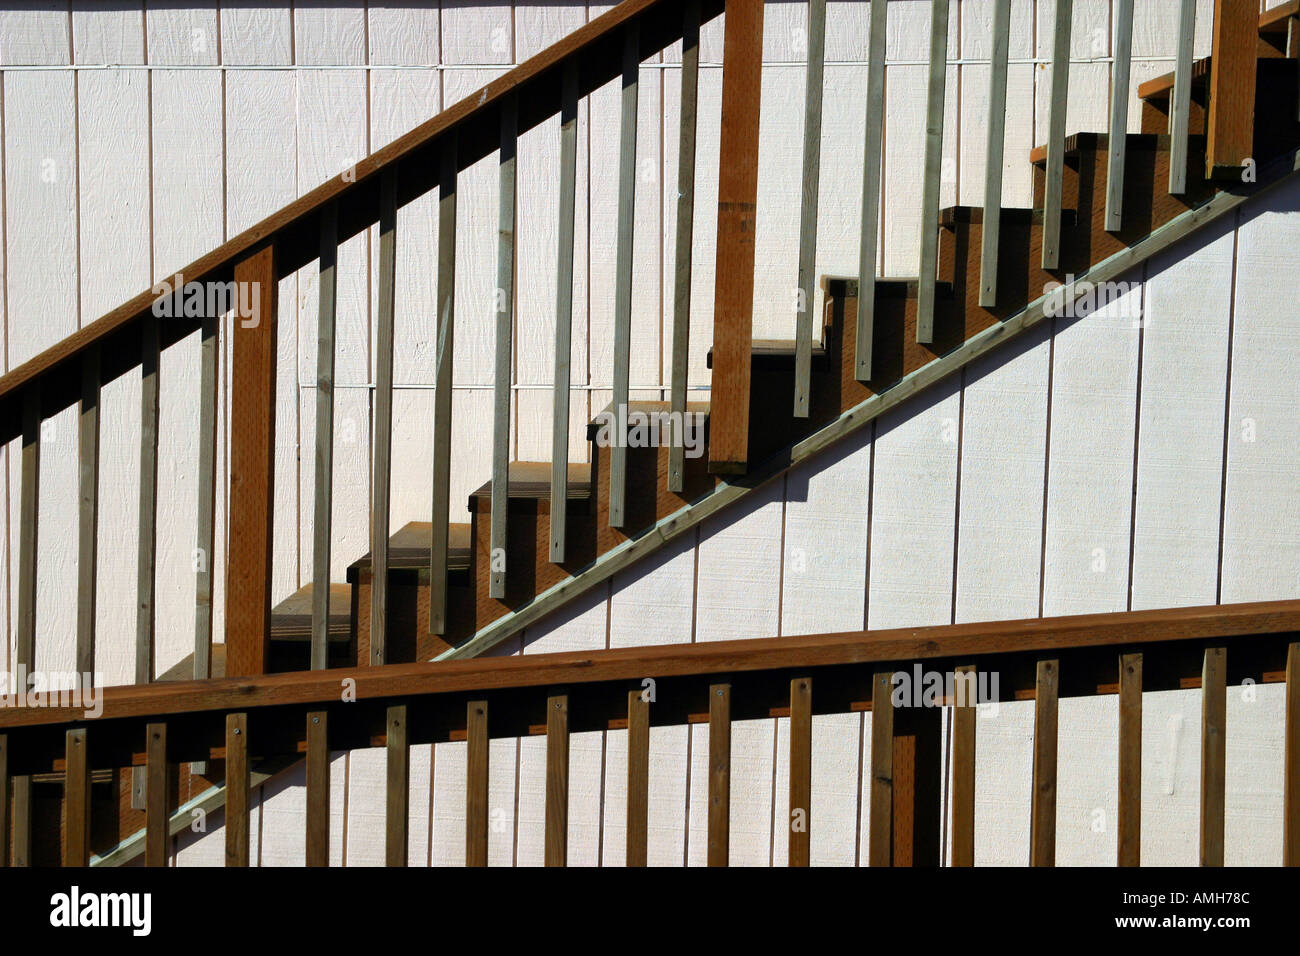 Wooden steps on the side of a building - Stock Image